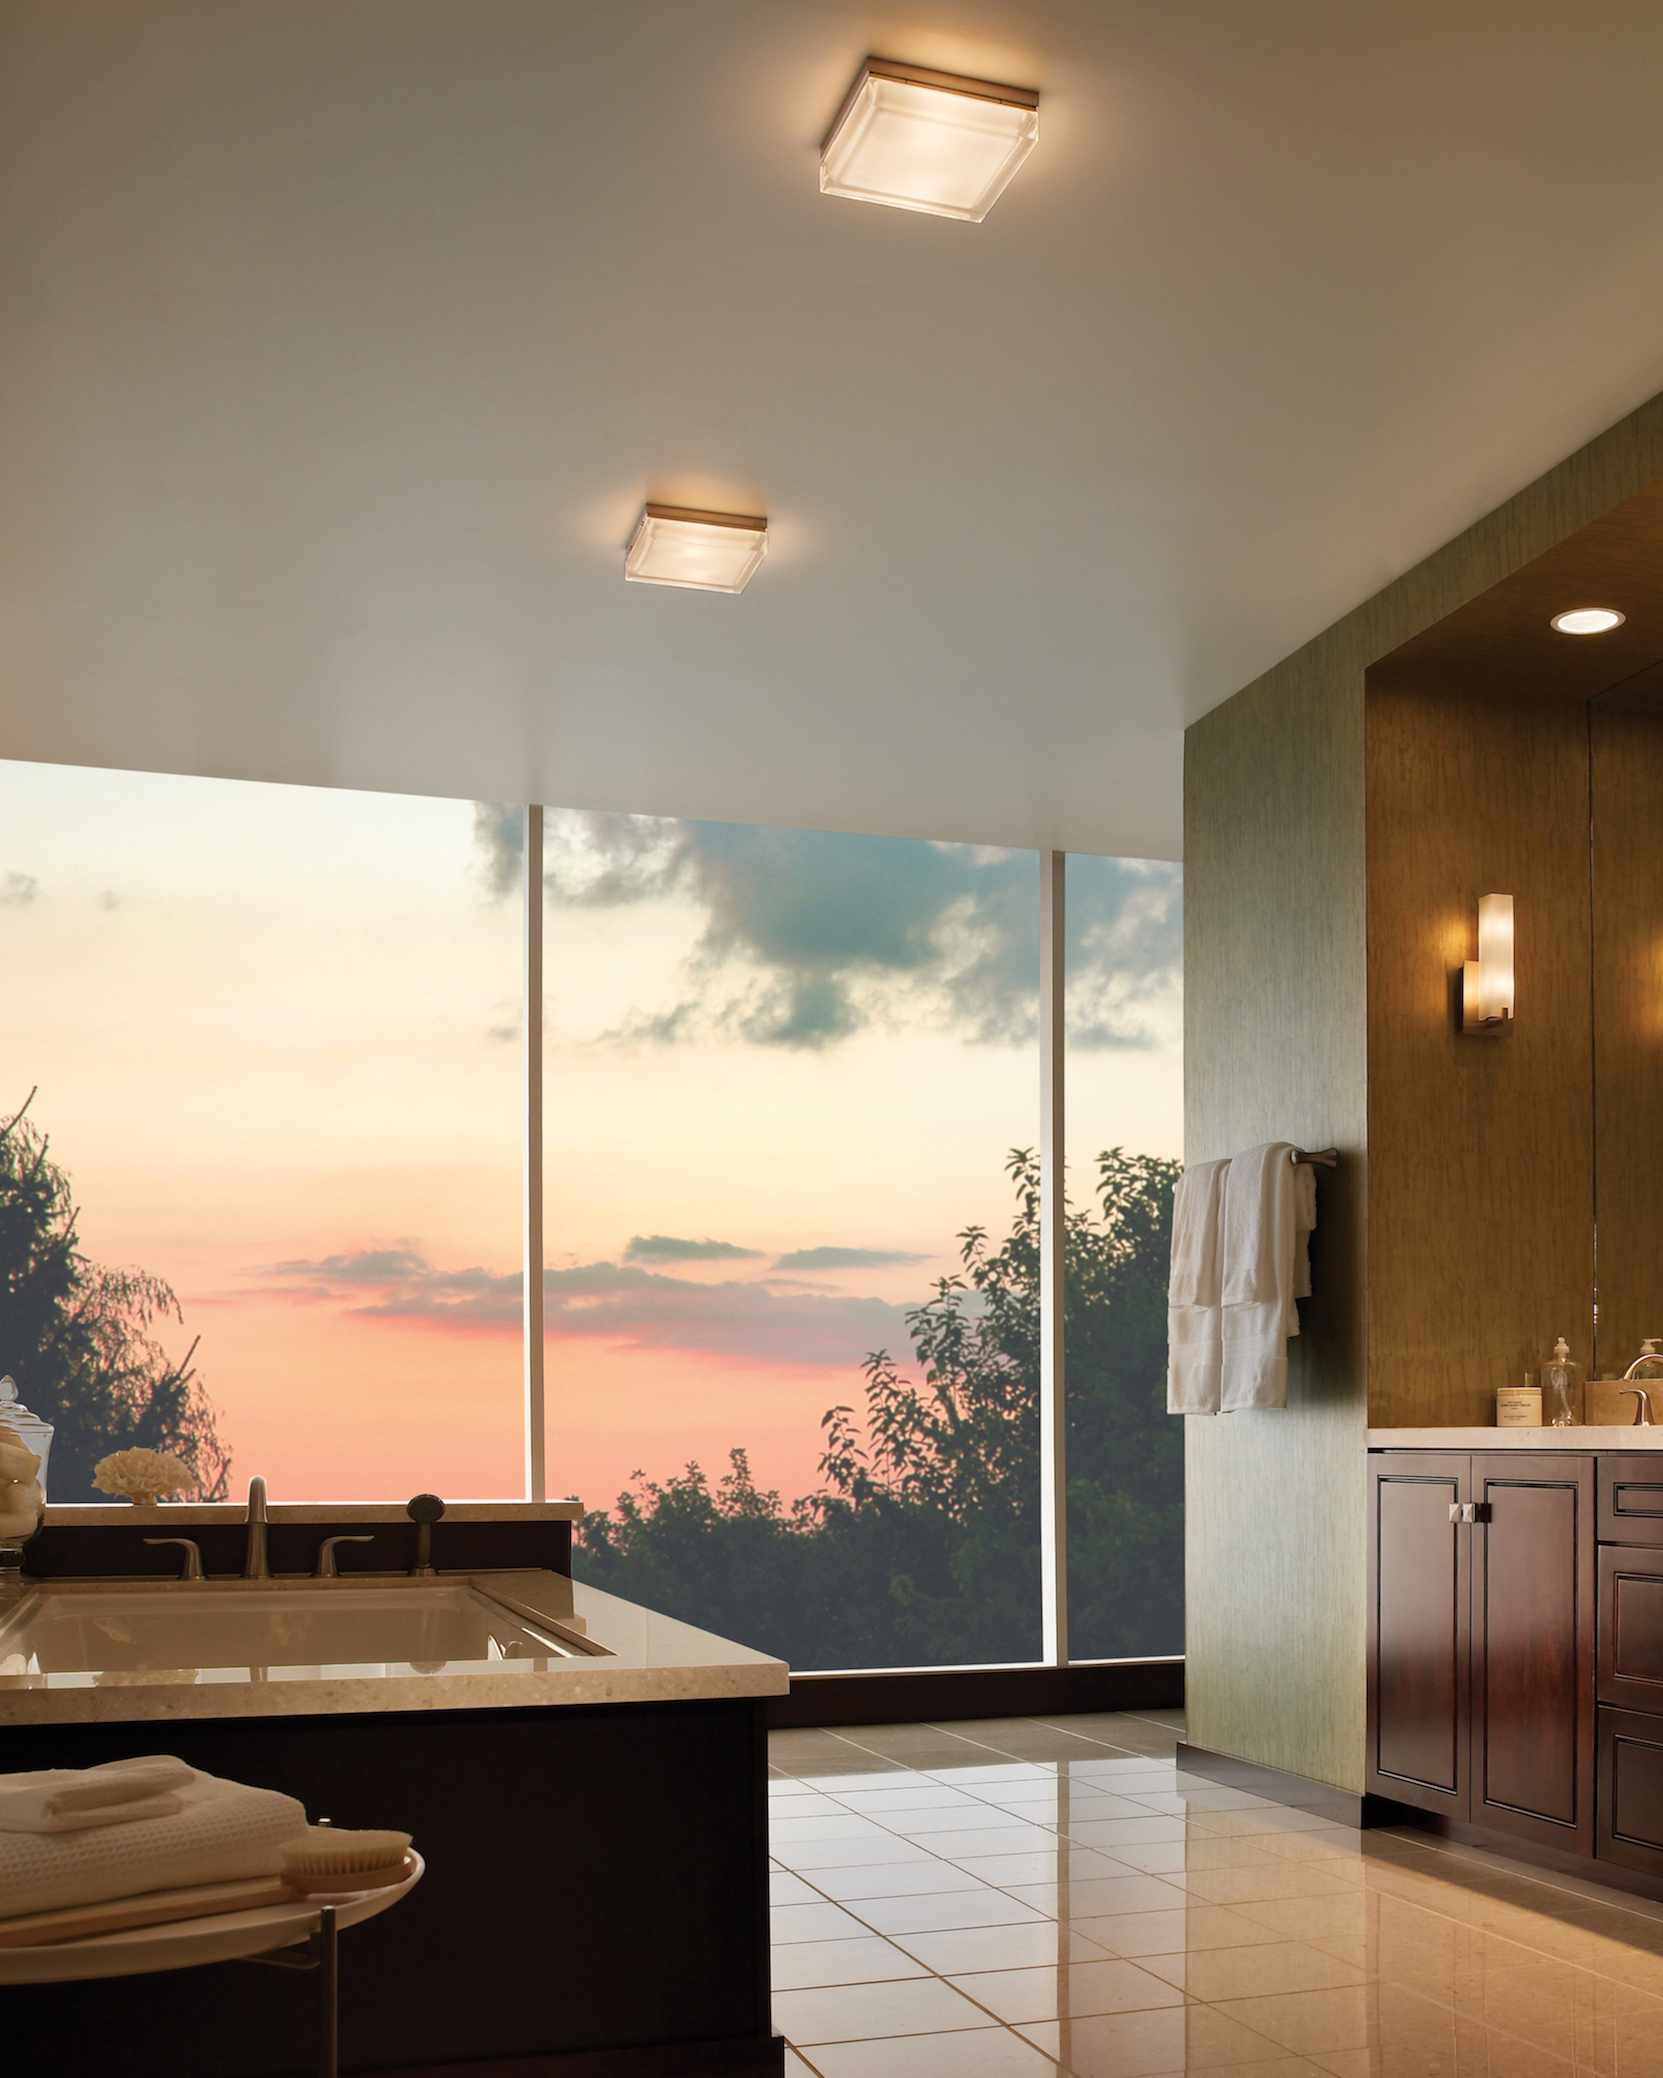 Bathroom Vanity Lighting Guide bathroom lighting buying guide | design necessities lighting